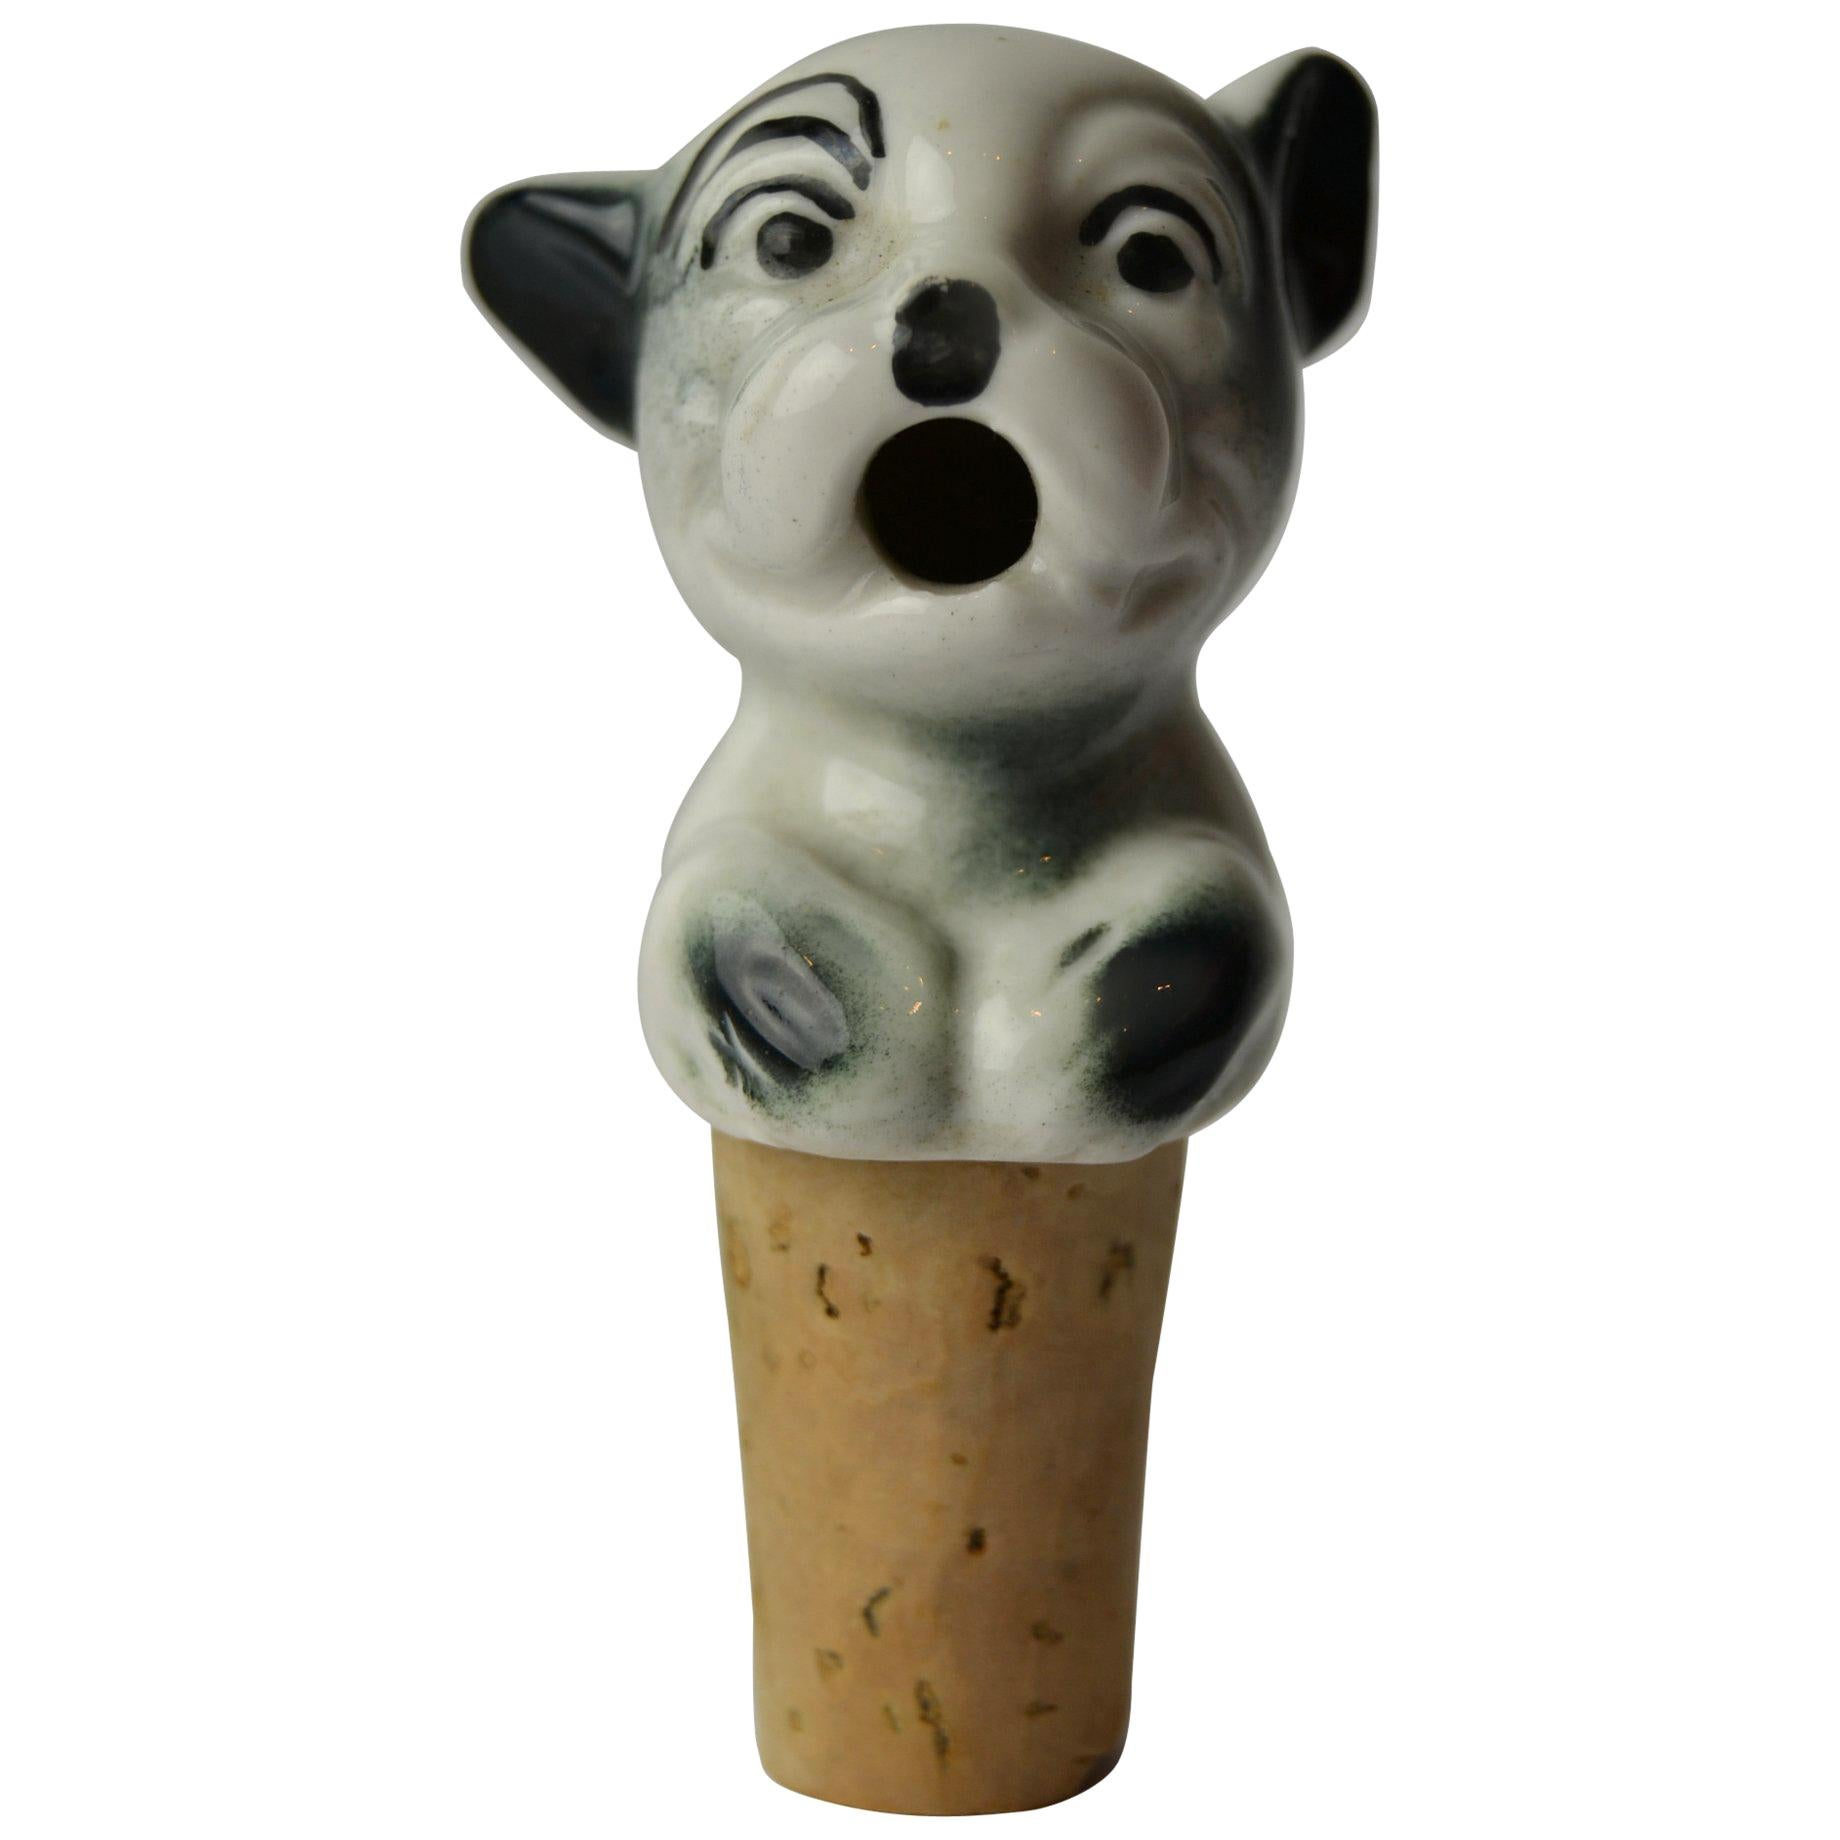 Figural Porcelain Bottle Stopper with Bonzo the Caricature Dog